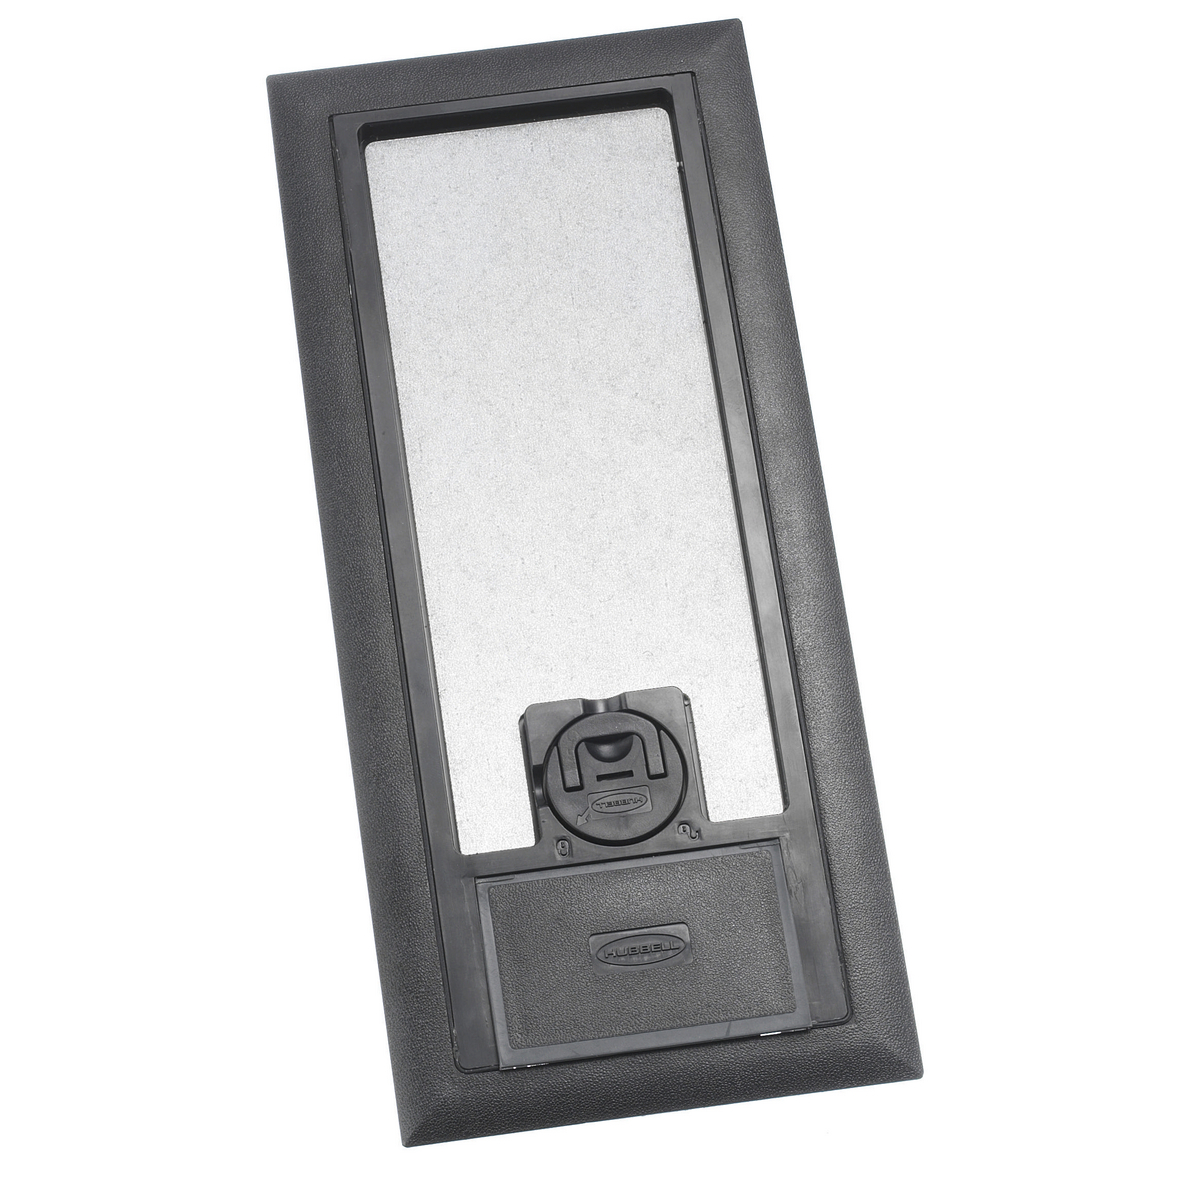 Hubbell 3SFBCBKA 11.88 x 5.2 Inch Black Reinforced Non-Metallic Floor Box Cover